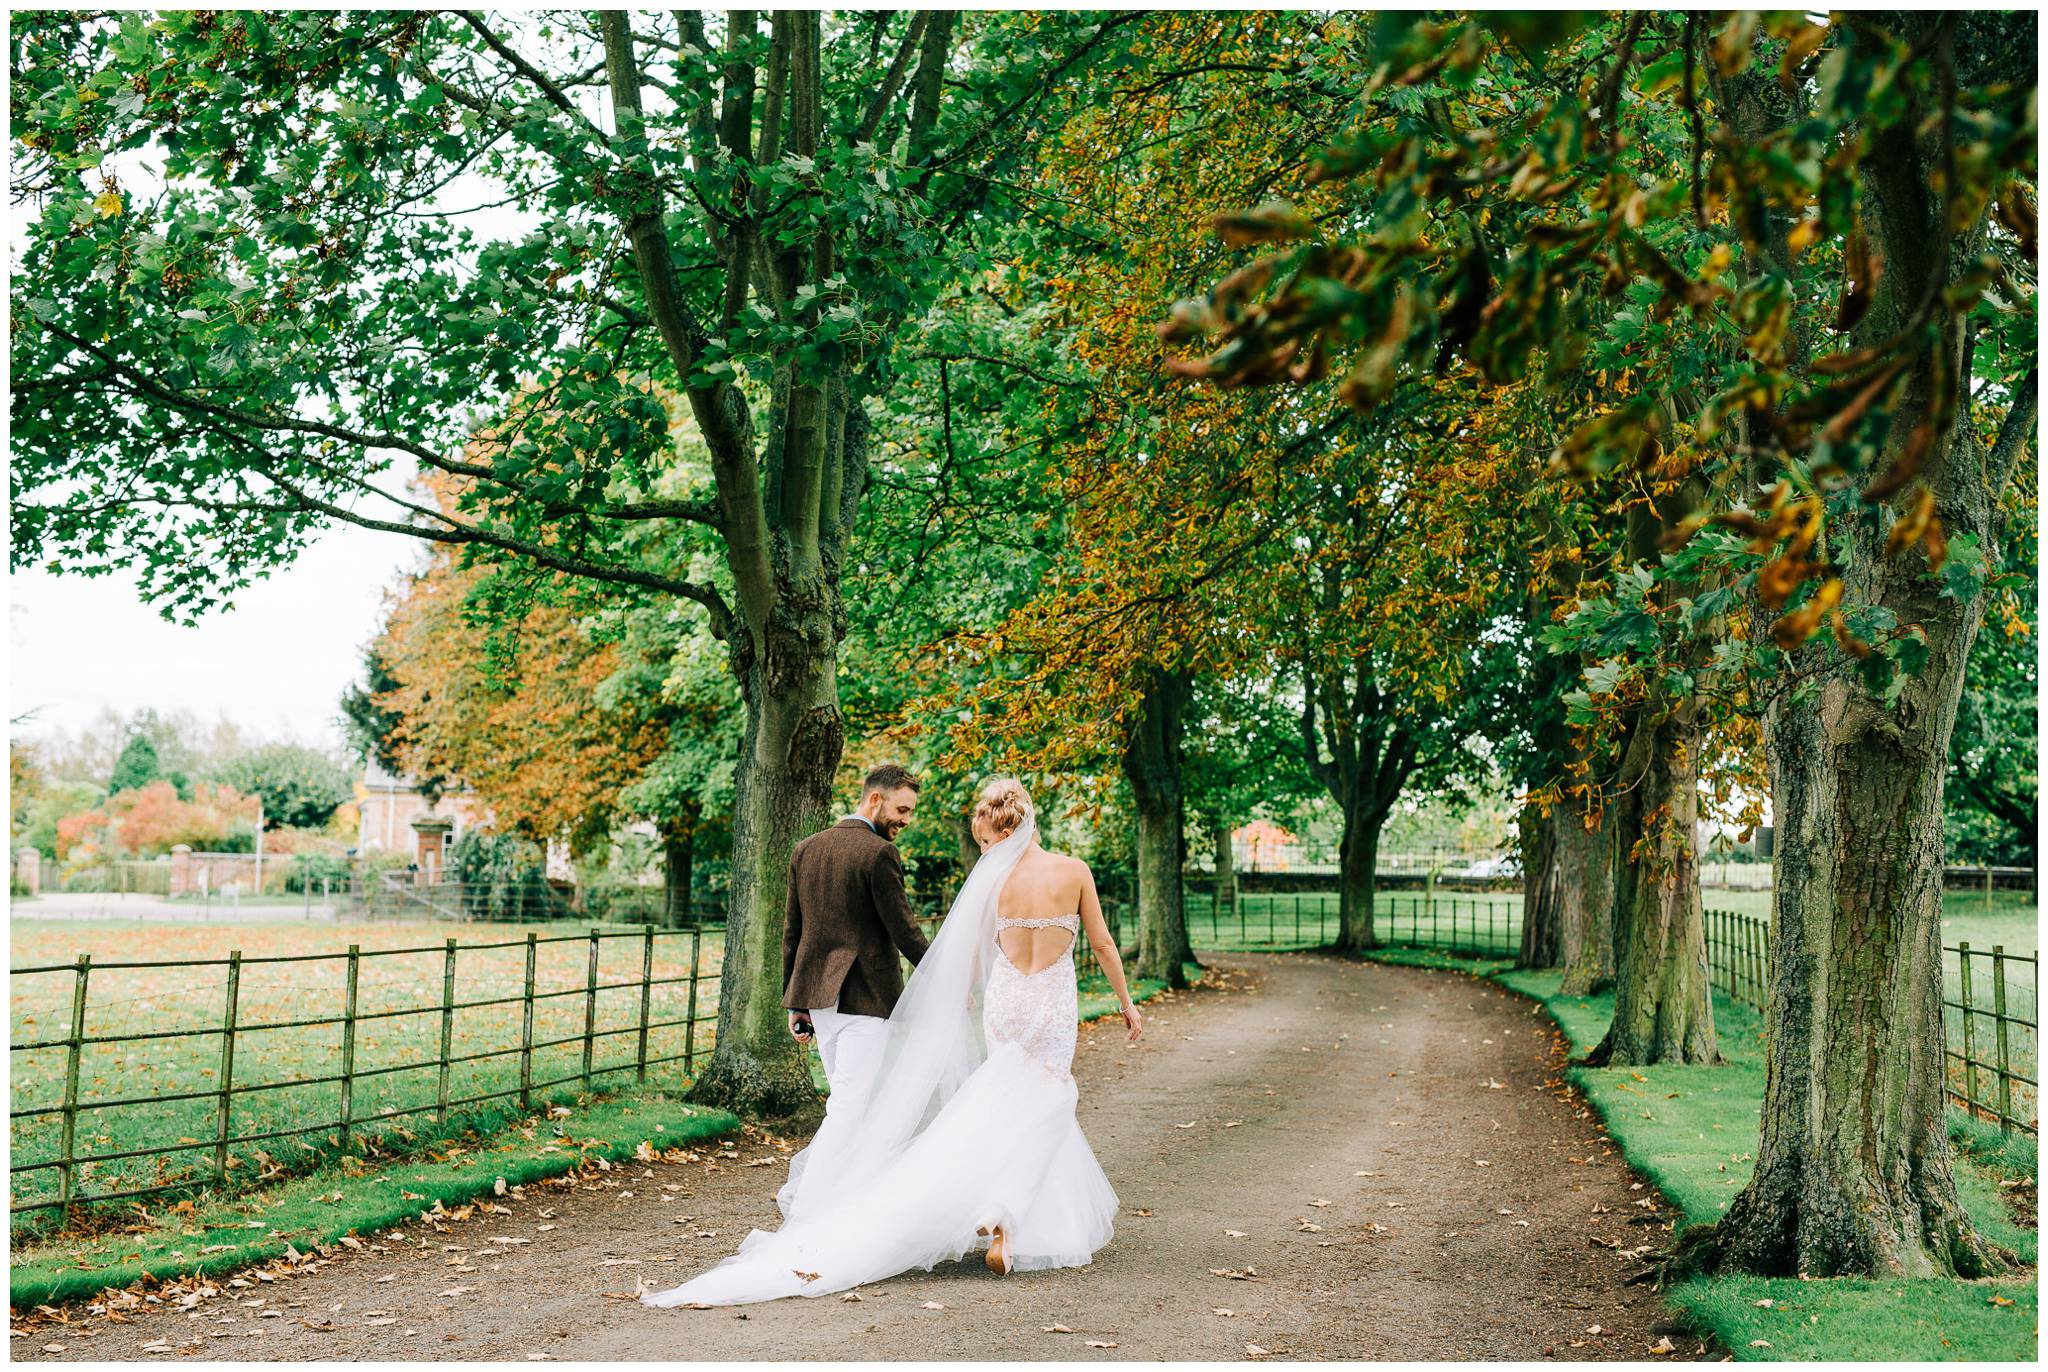 Natural wedding photography Manchester - Clare Robinson Photography_0291.jpg